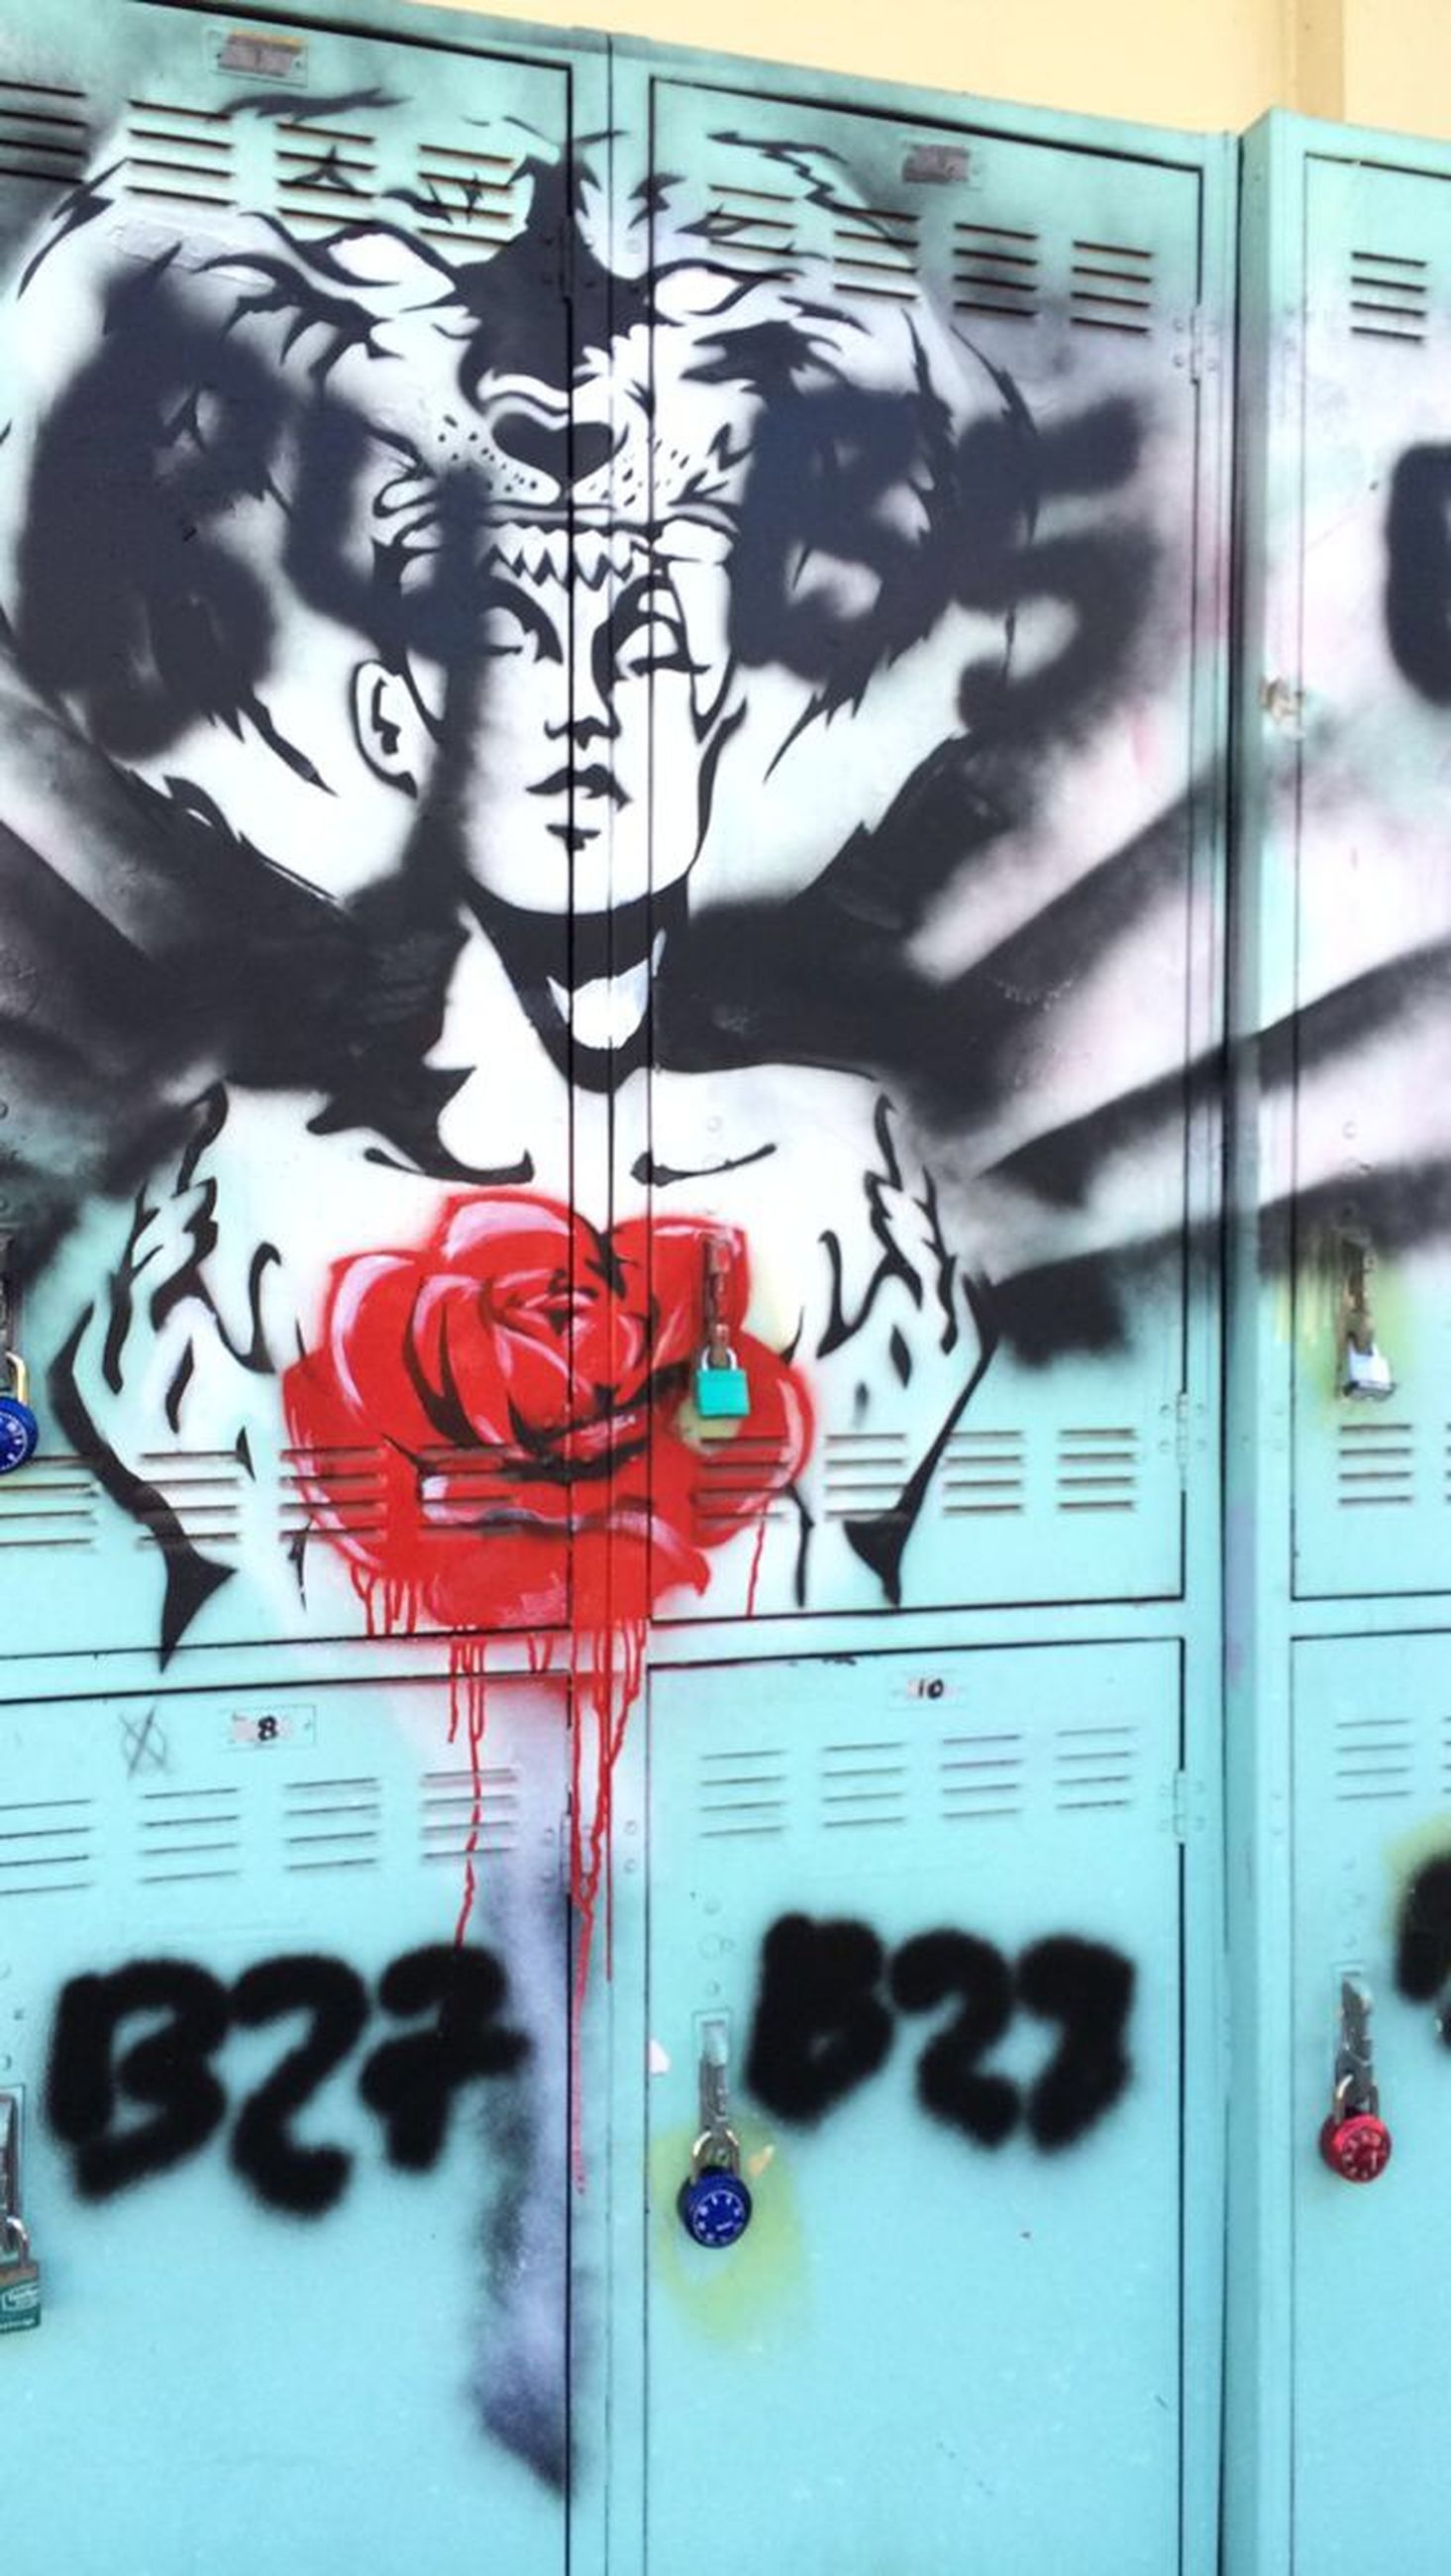 indoors, creativity, art and craft, communication, art, text, red, western script, wall - building feature, close-up, painting, graffiti, reflection, wall, human representation, glass - material, ideas, built structure, day